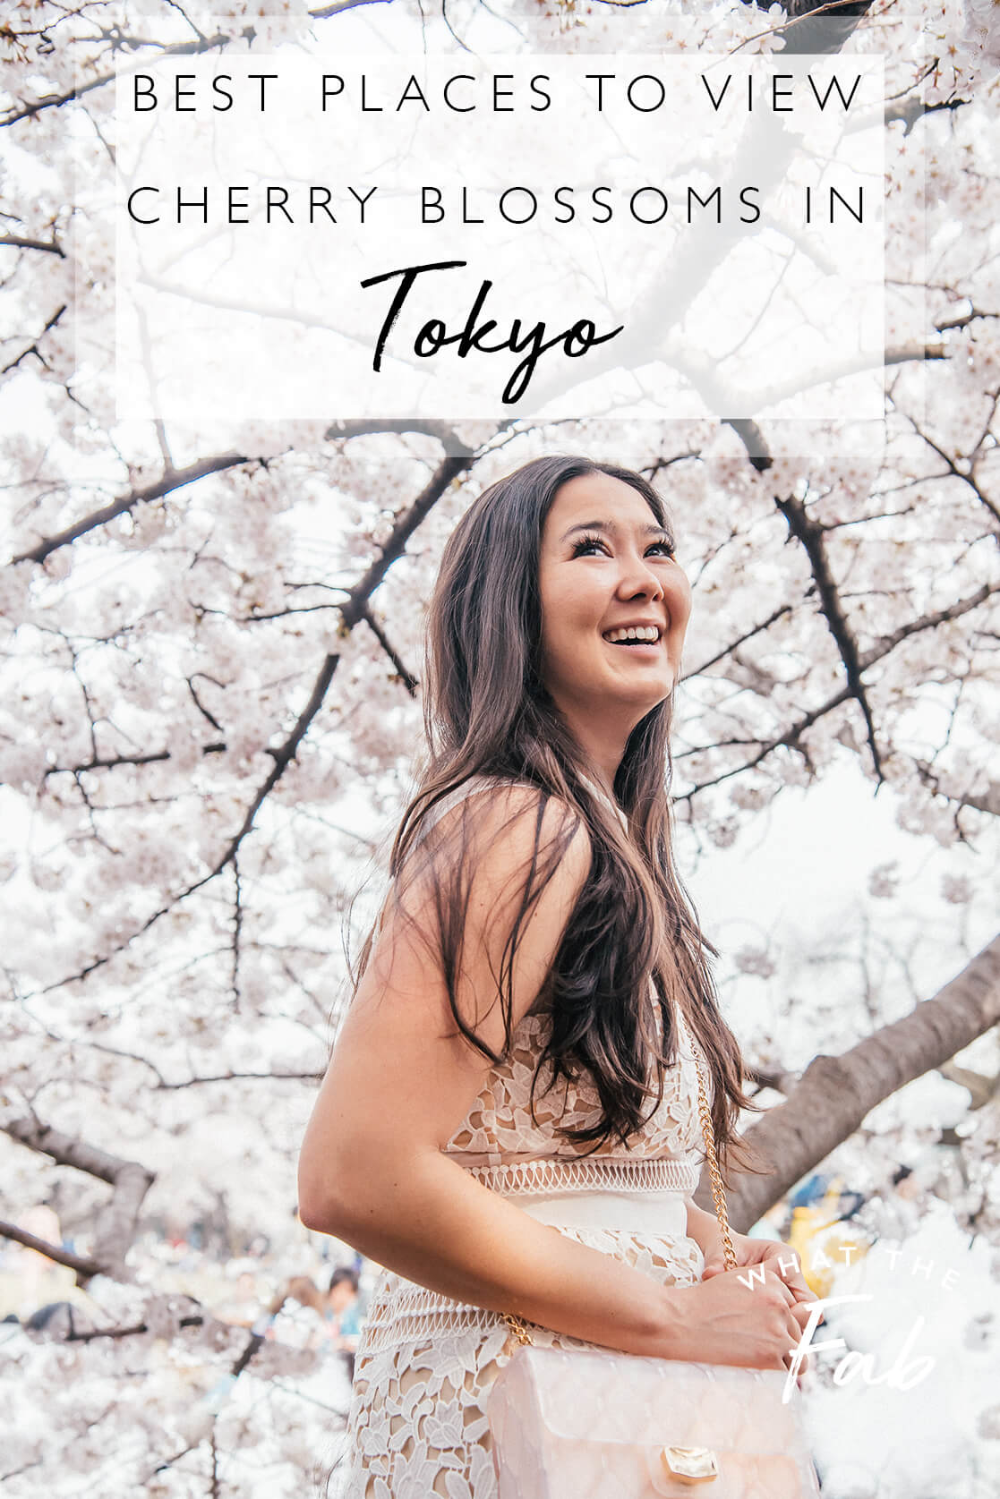 Best Places To View Cherry Blossoms In Tokyo 2021 Japan Travel Destinations Japan Travel Guide Tokyo Japan Travel